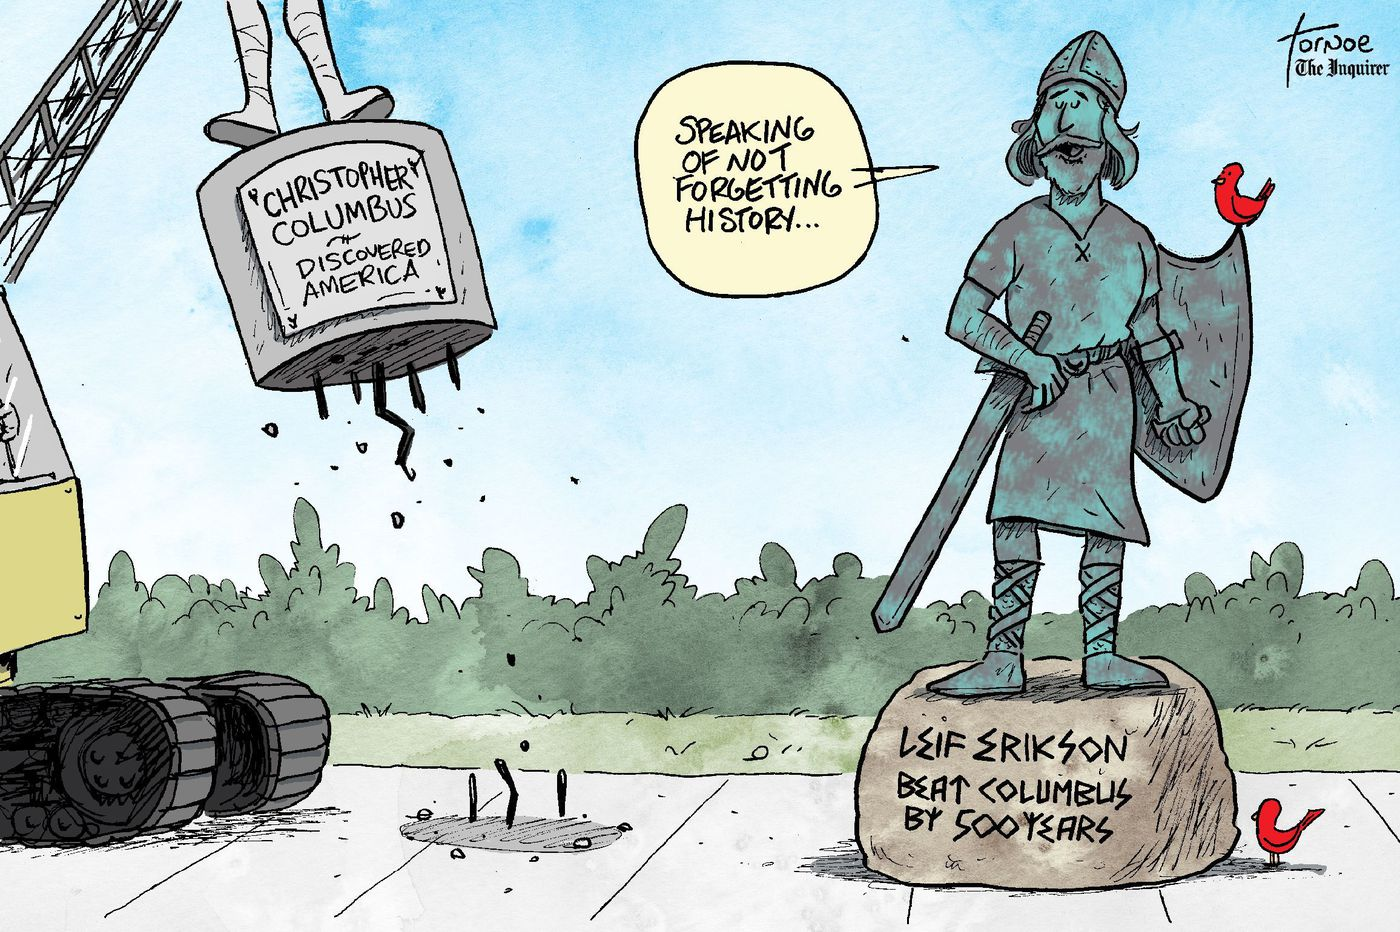 Cartoon: With Christopher Columbus statues under scrutiny, let's give Leif Erikson his due